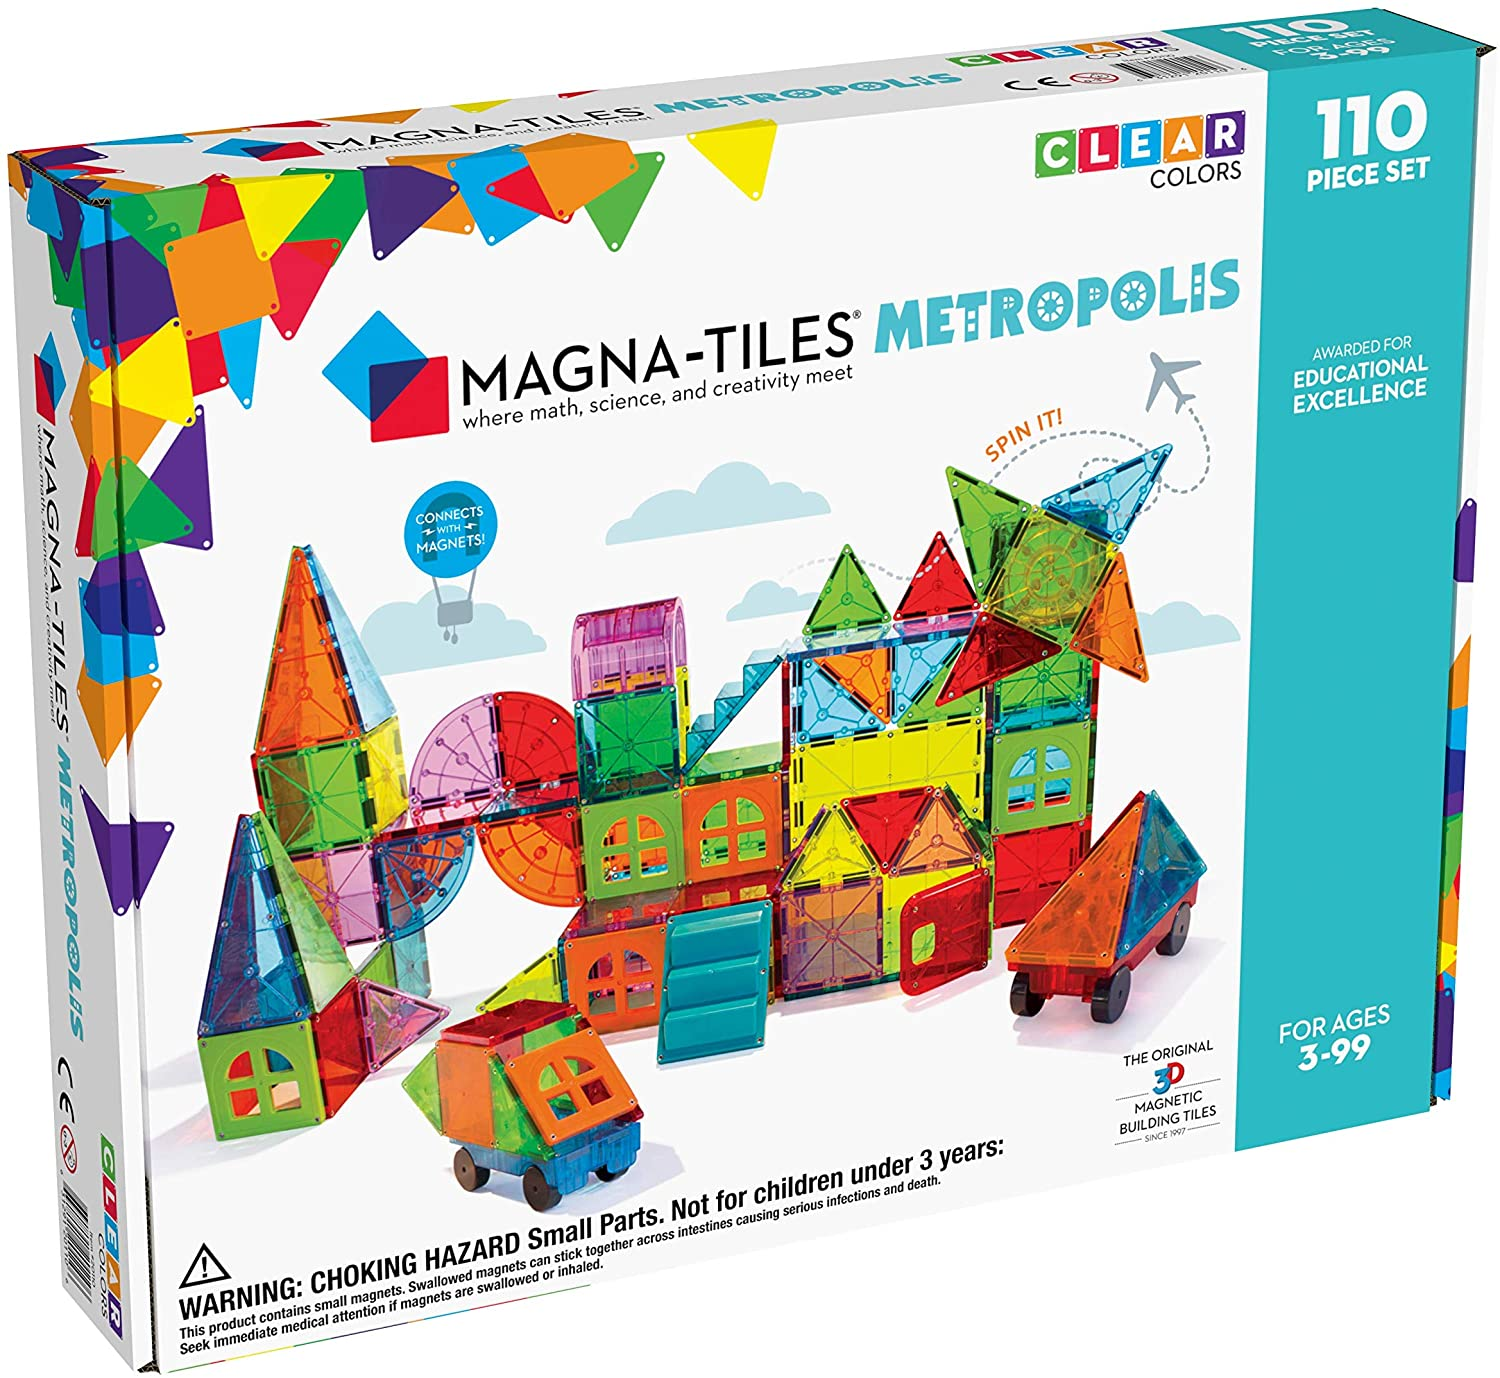 Magnatiles Metropolis Set 110pc